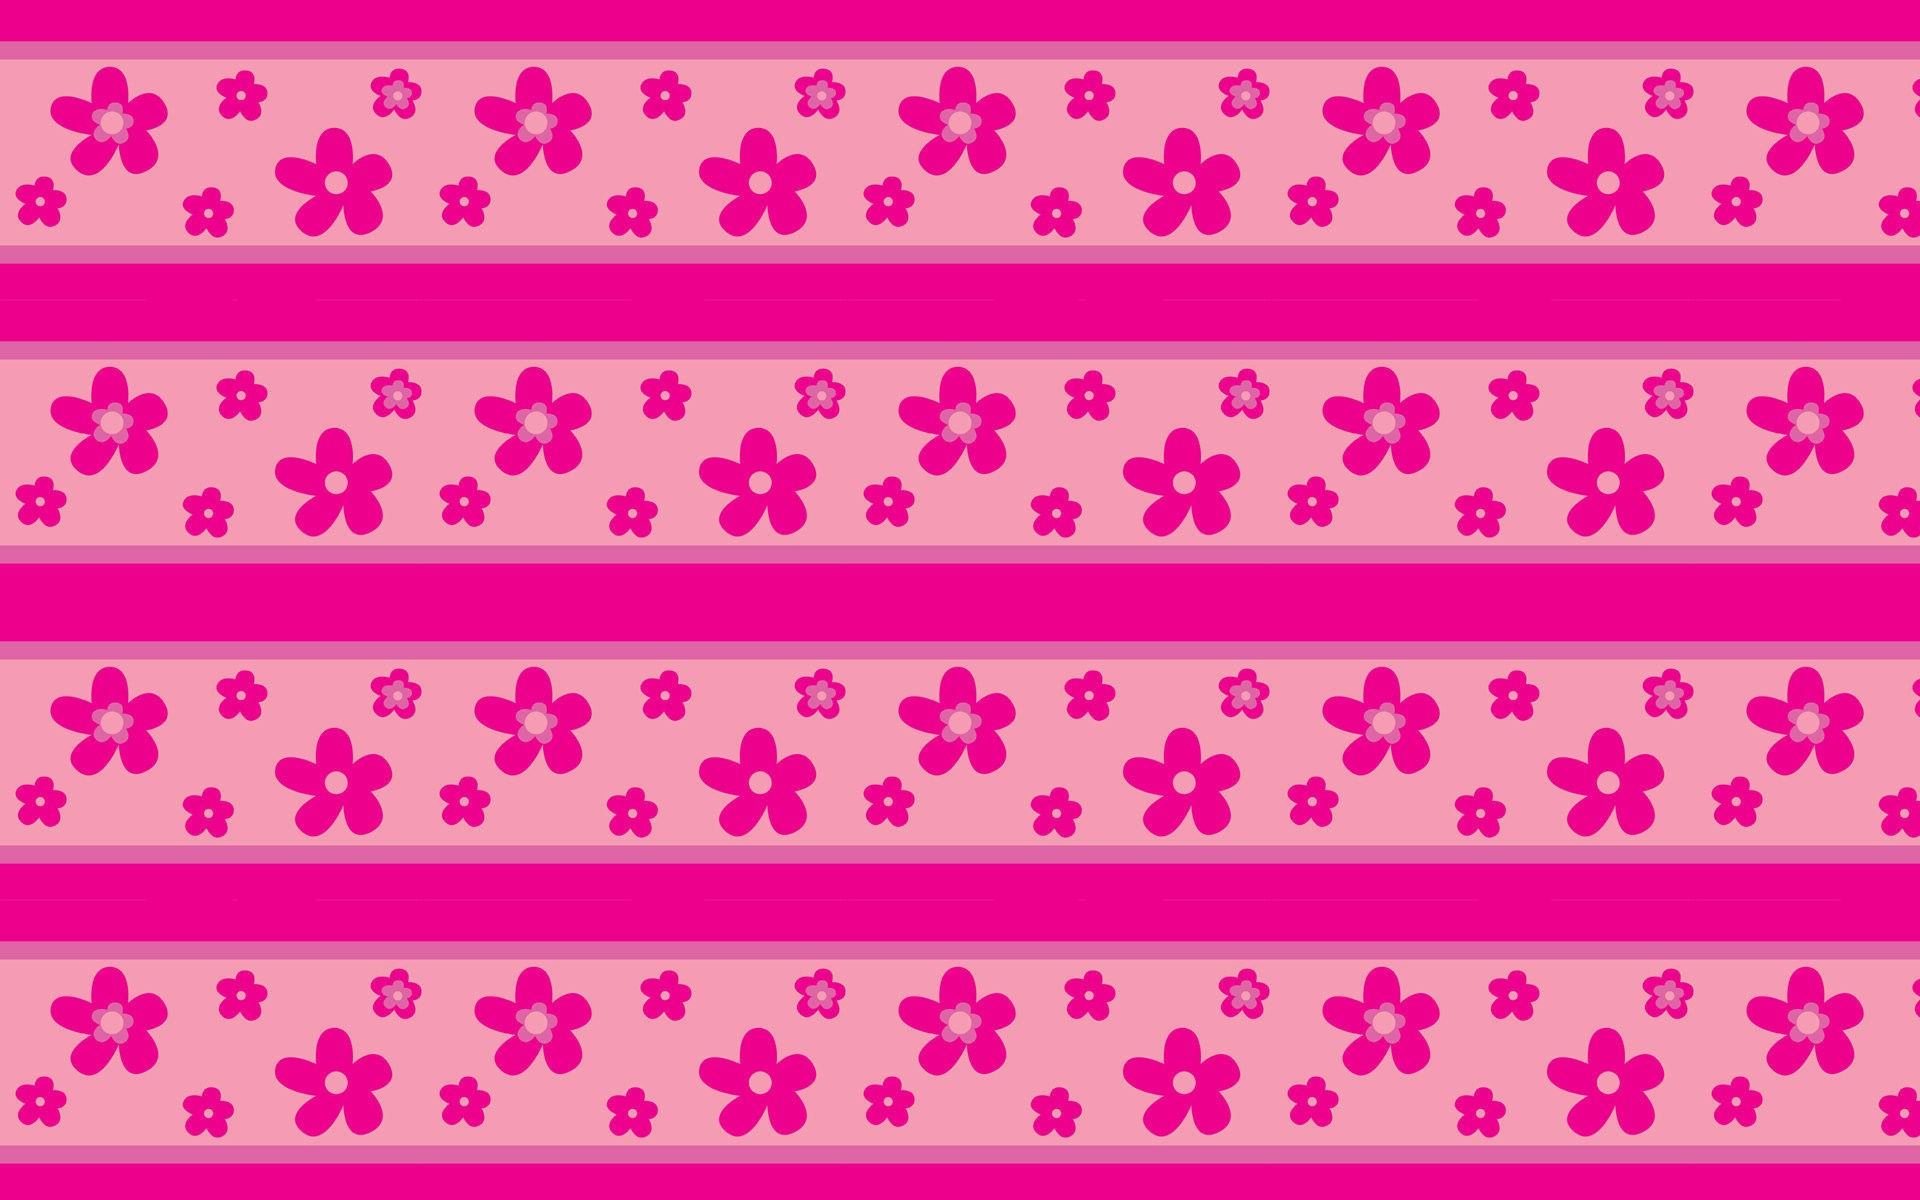 pink wallpaper ·① download free amazing full hd wallpapers for